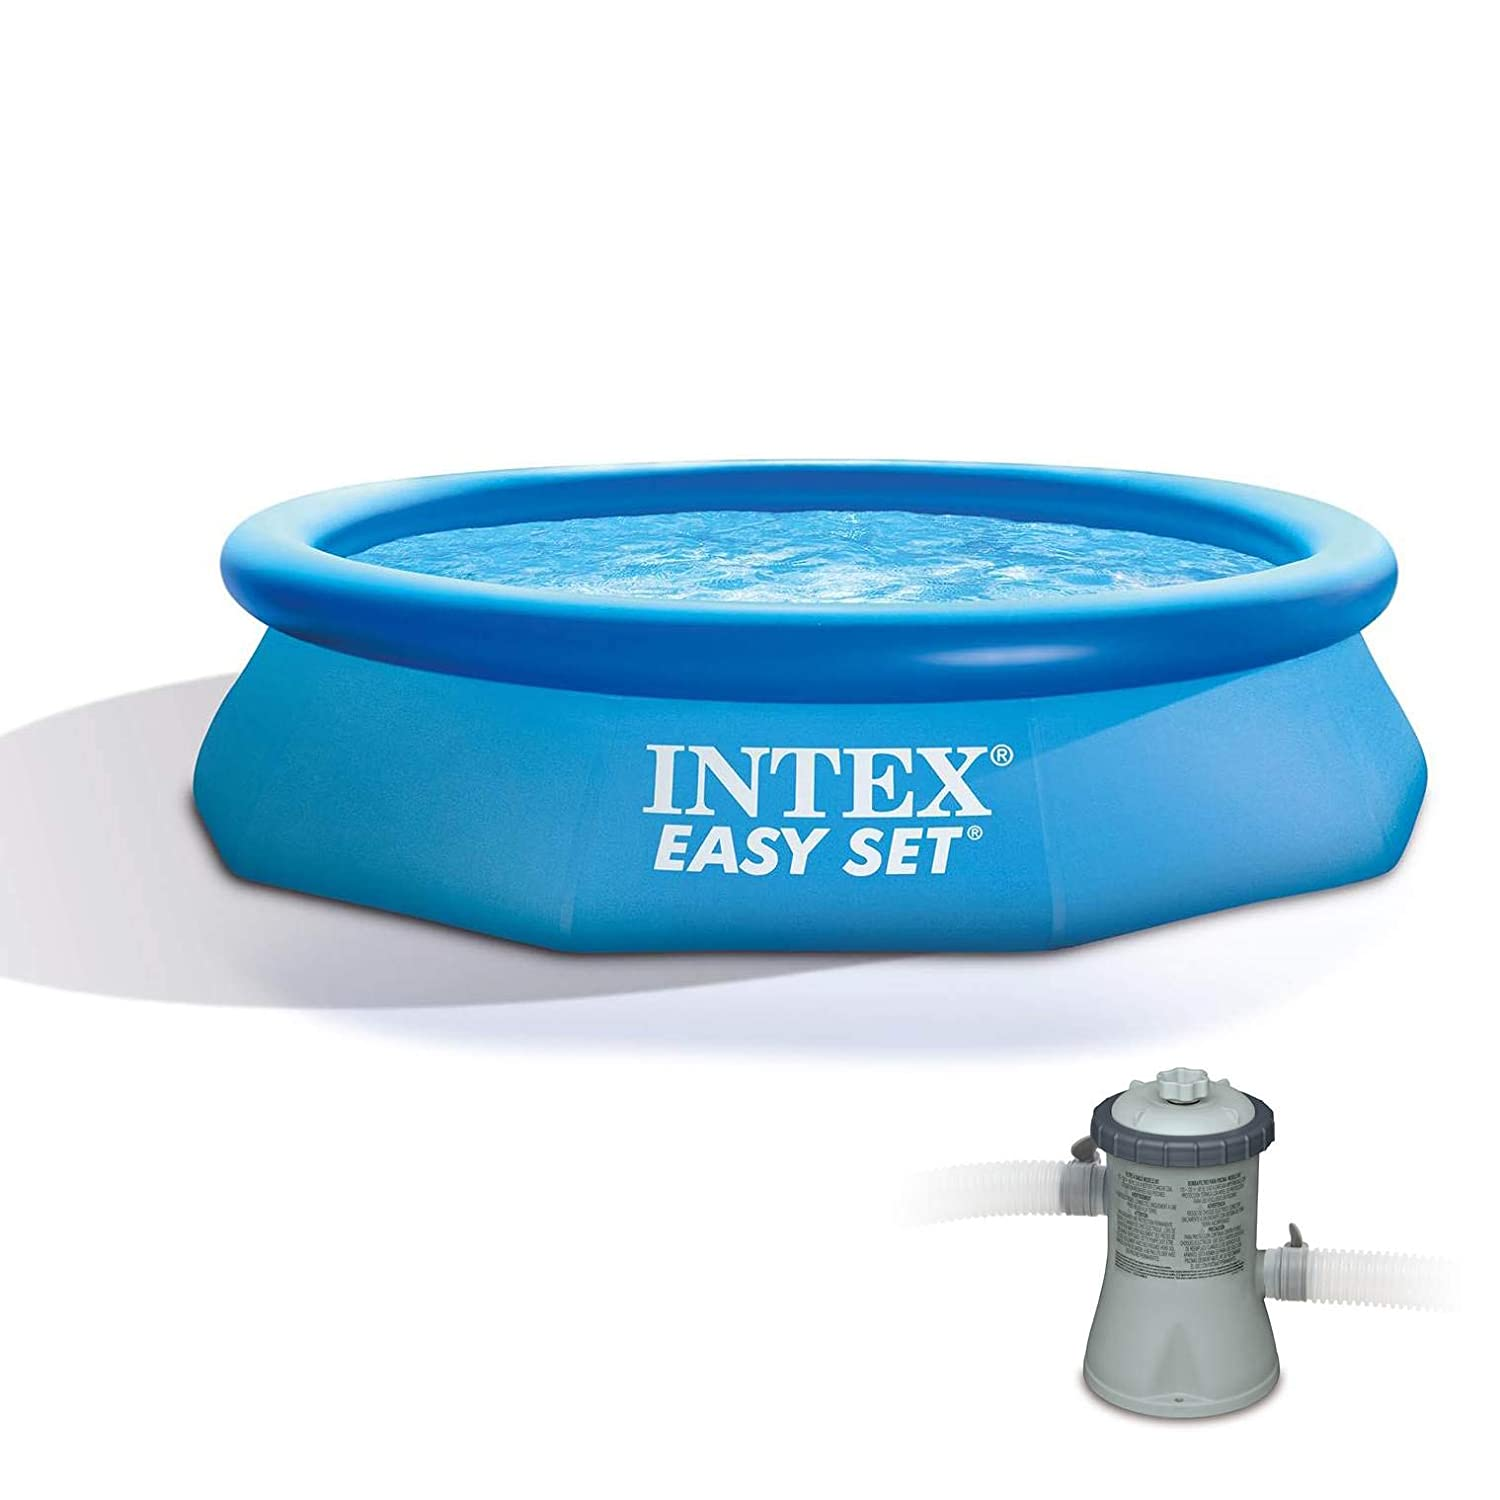 INTEX Piscina Easy Set 305 cm x 76 cm con depuradora: Amazon ...